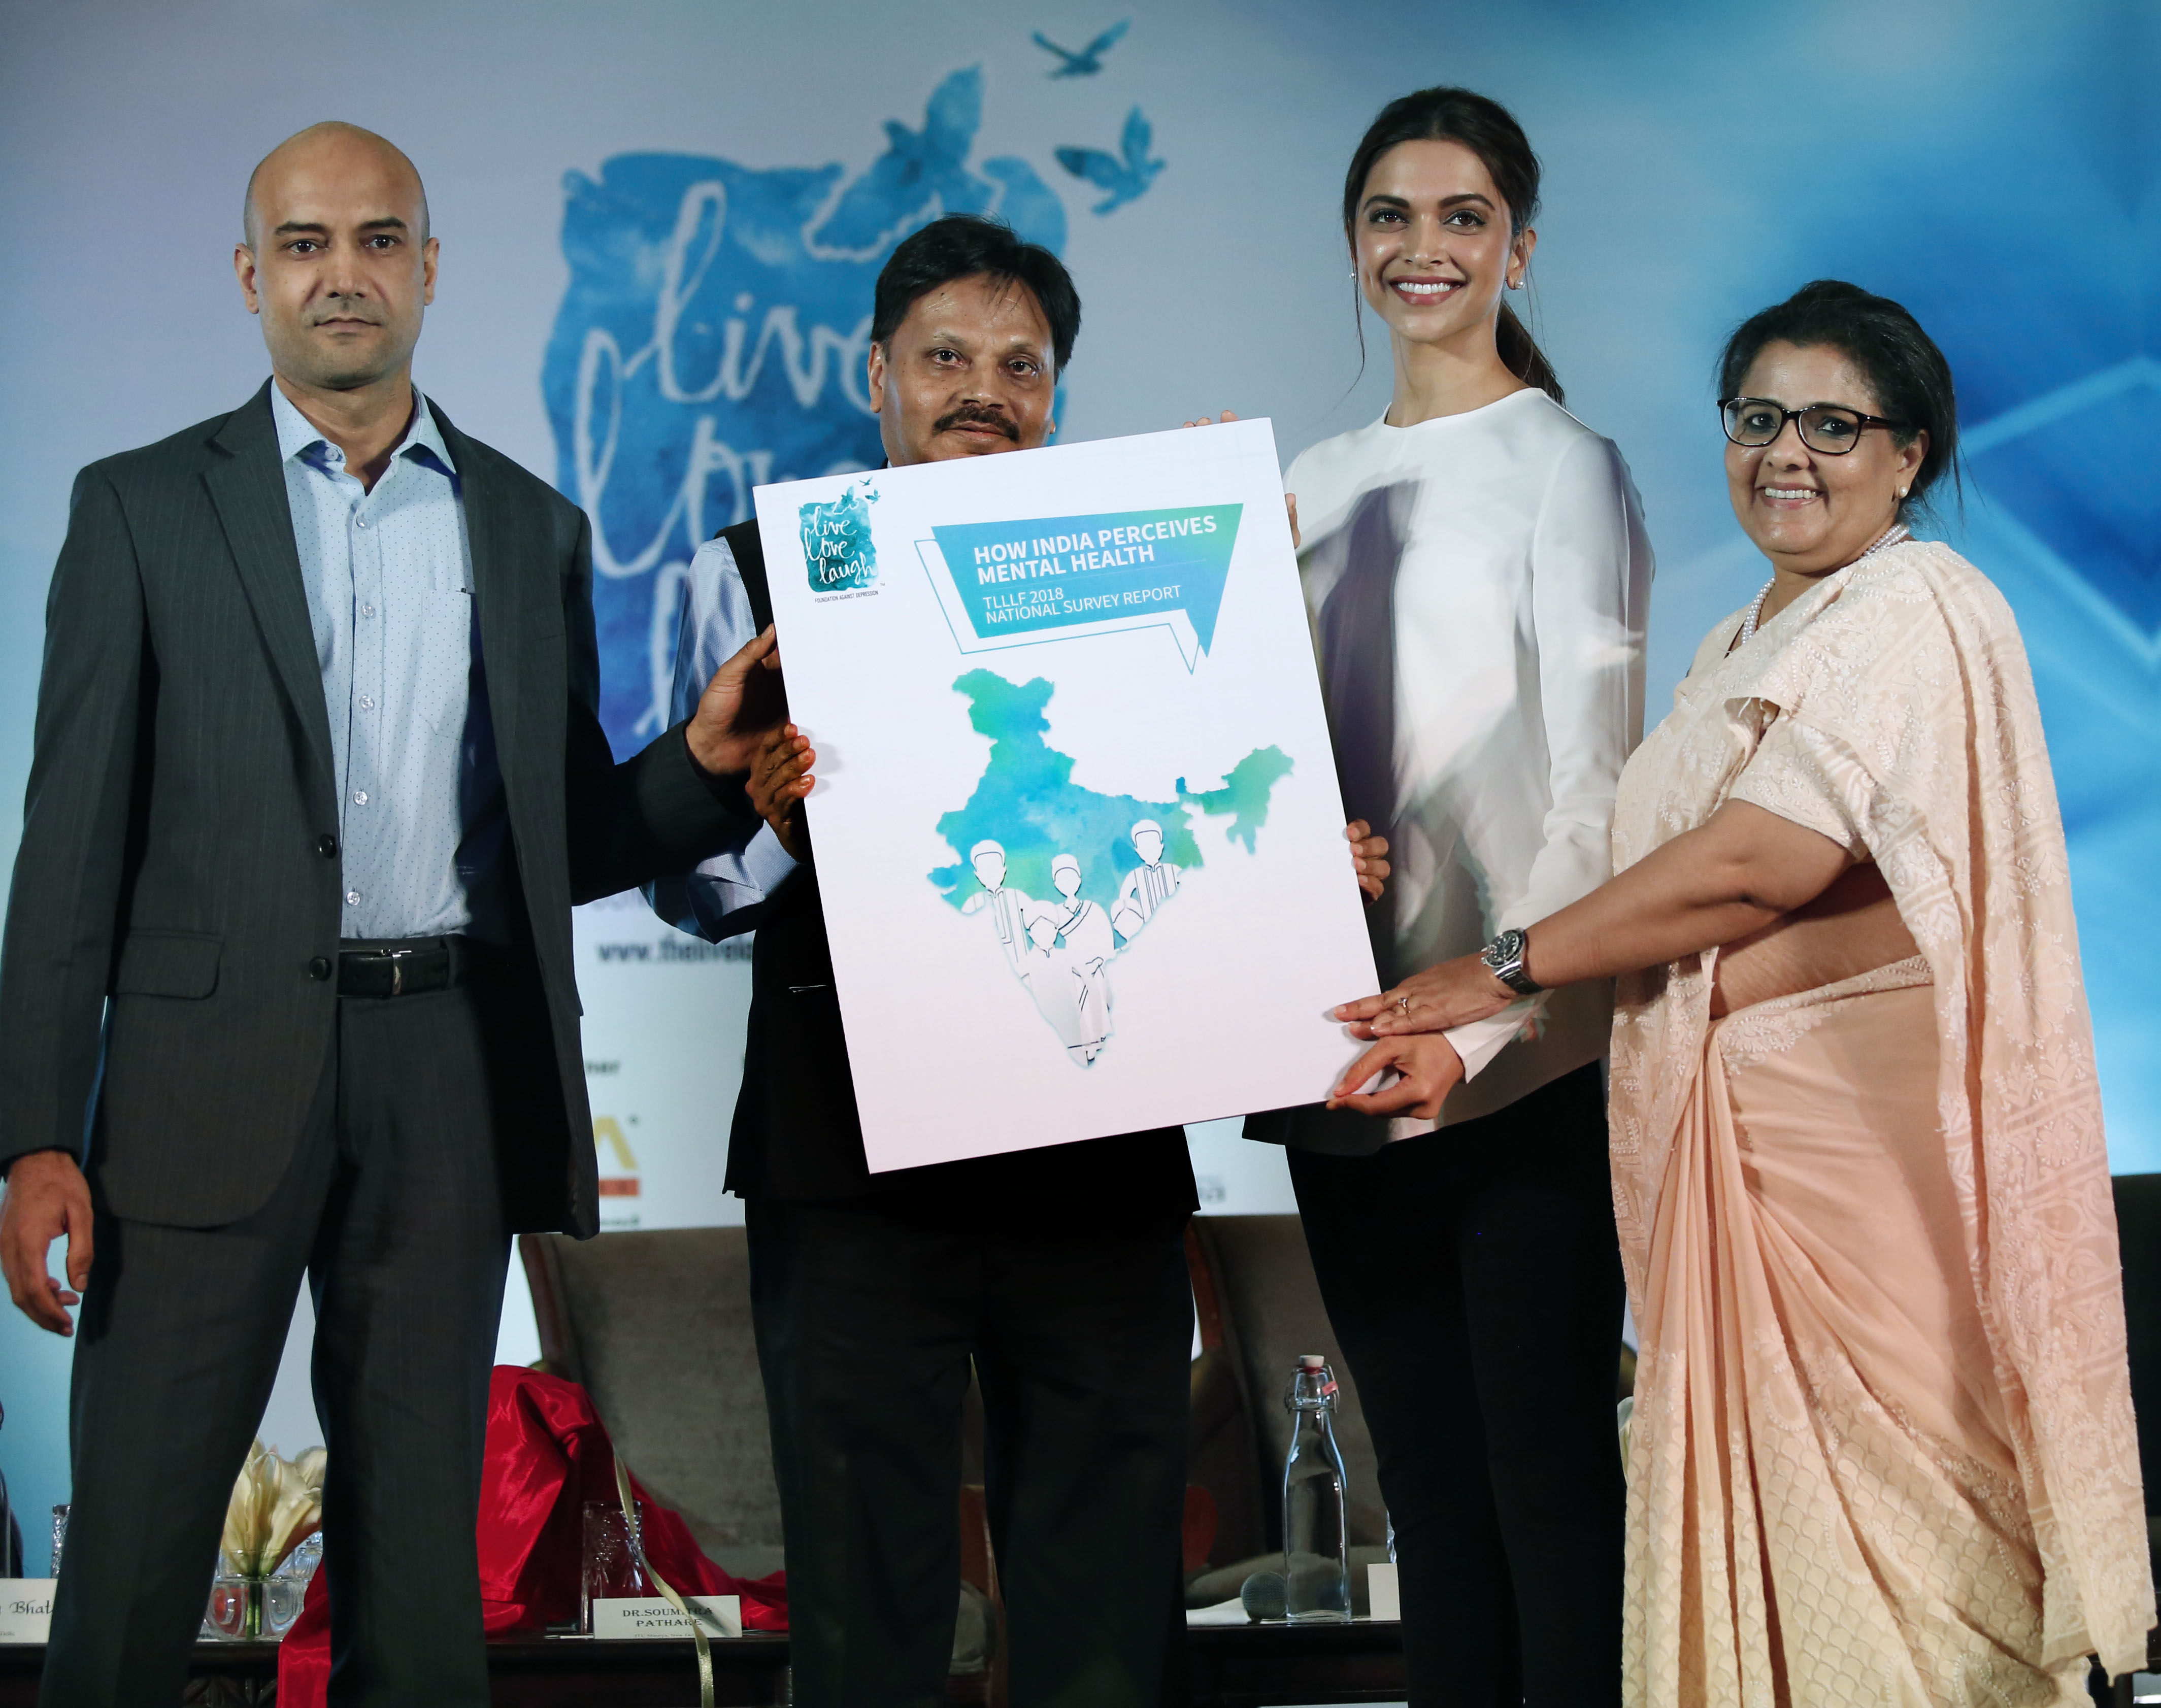 L2R Dr Shyam Bhat  Shri Sanjeeva Kumar  Ms Deepika Padukone and Ms Anna Chandy unveiling the Report on Public Perception Towards Mental Health in India